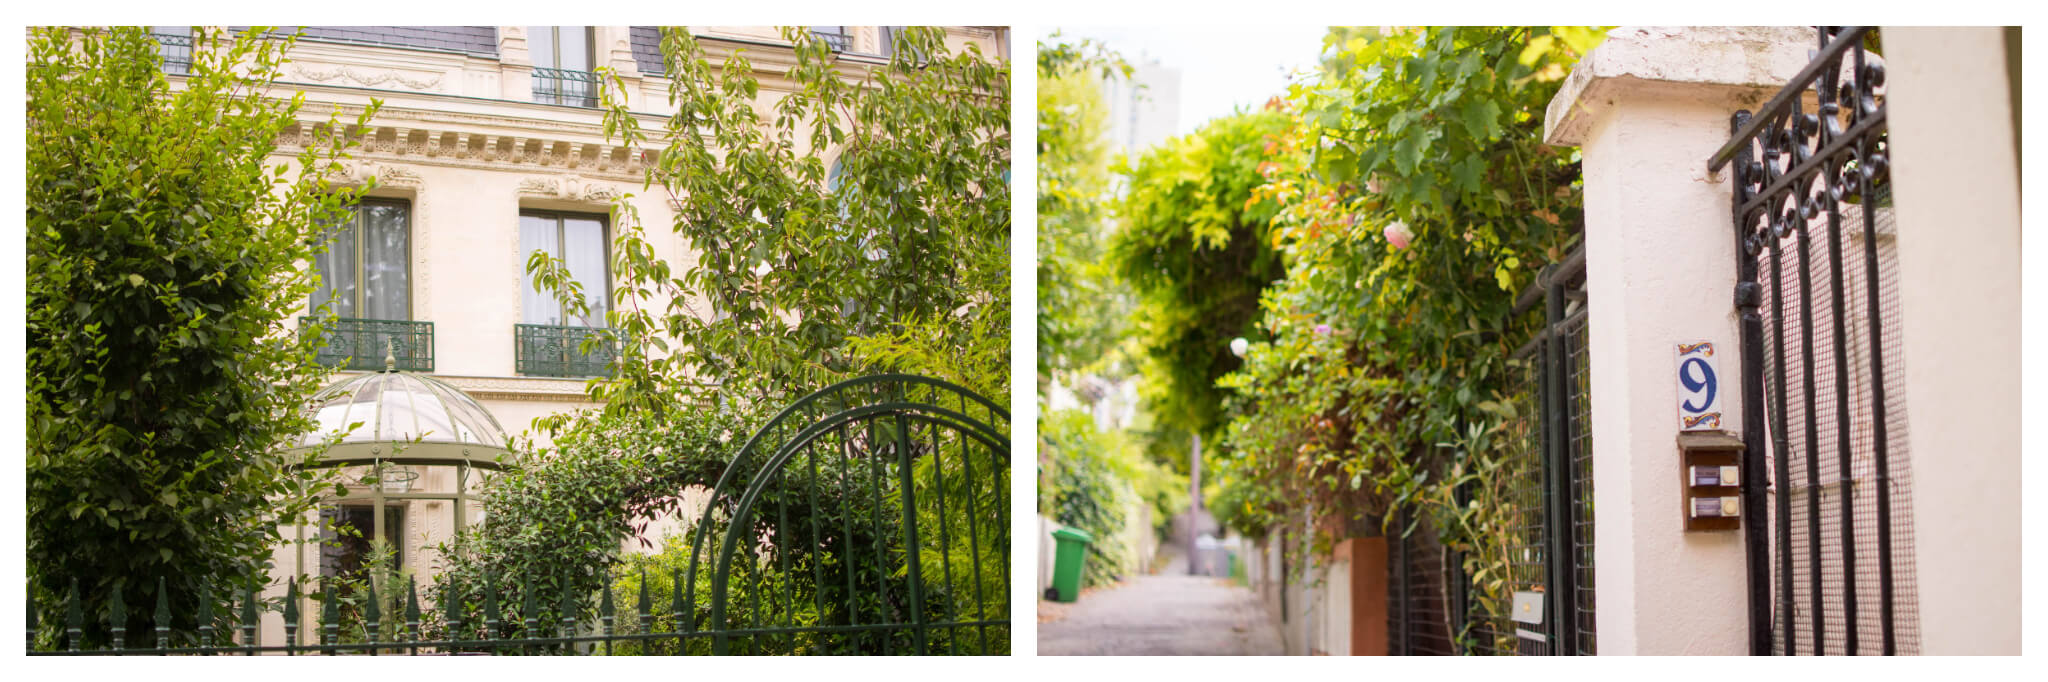 On left: The Cité des Fleurs in the 17th arrondissement of Paris features gated homes with unique architectural and botanical styles. On right: Tiny pink flowers begin to bud in the Quartier de la Mouzaïa in the 19th arrondissement of Paris.